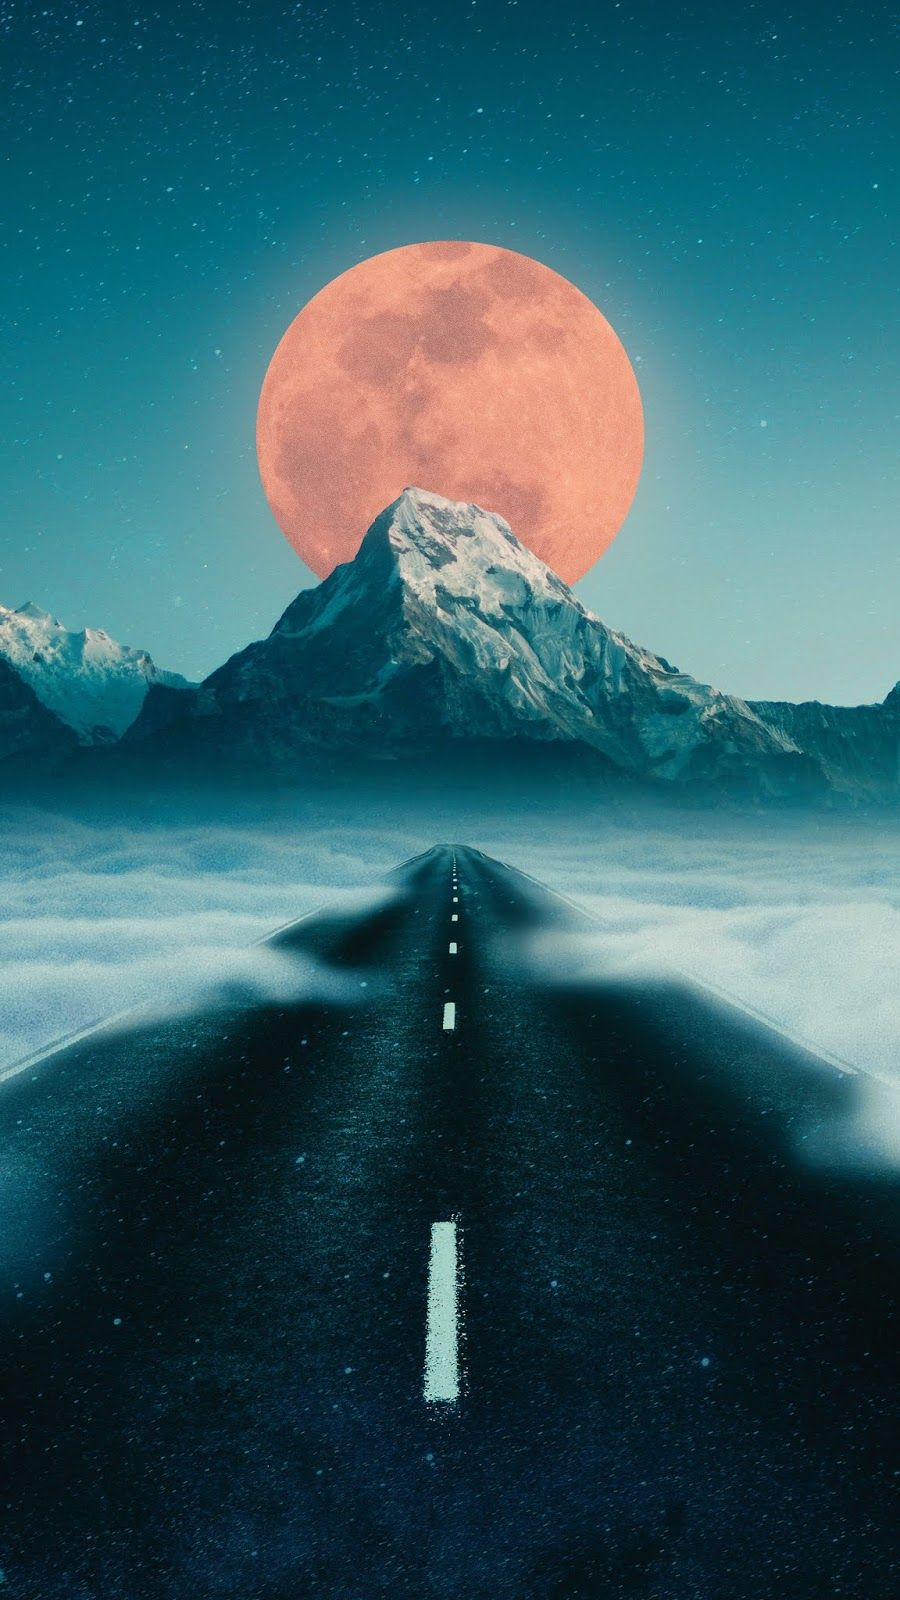 Cloud Road Wallpaper Iphone Android Background Followme Iphone Wallpaper Cute Wallpaper Backgrounds Beautiful Wallpapers